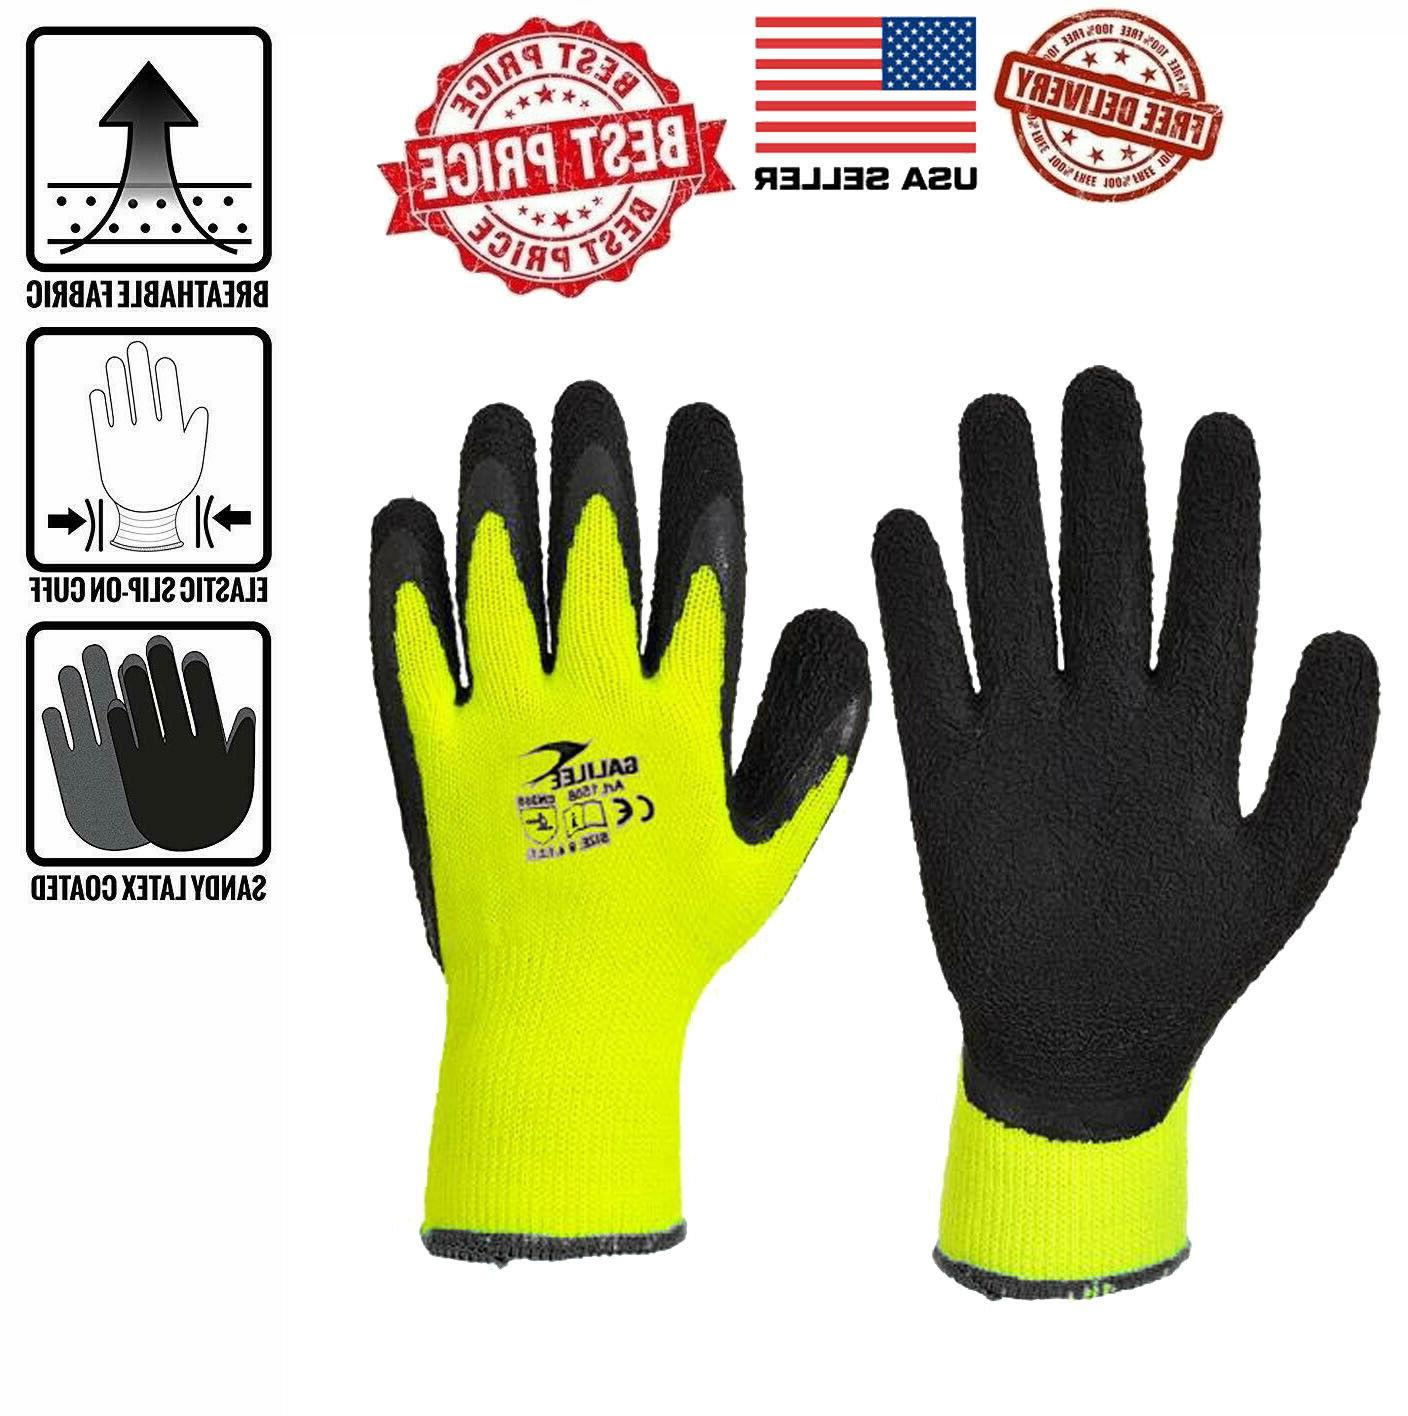 10 pair pack abrasion resistant work gloves